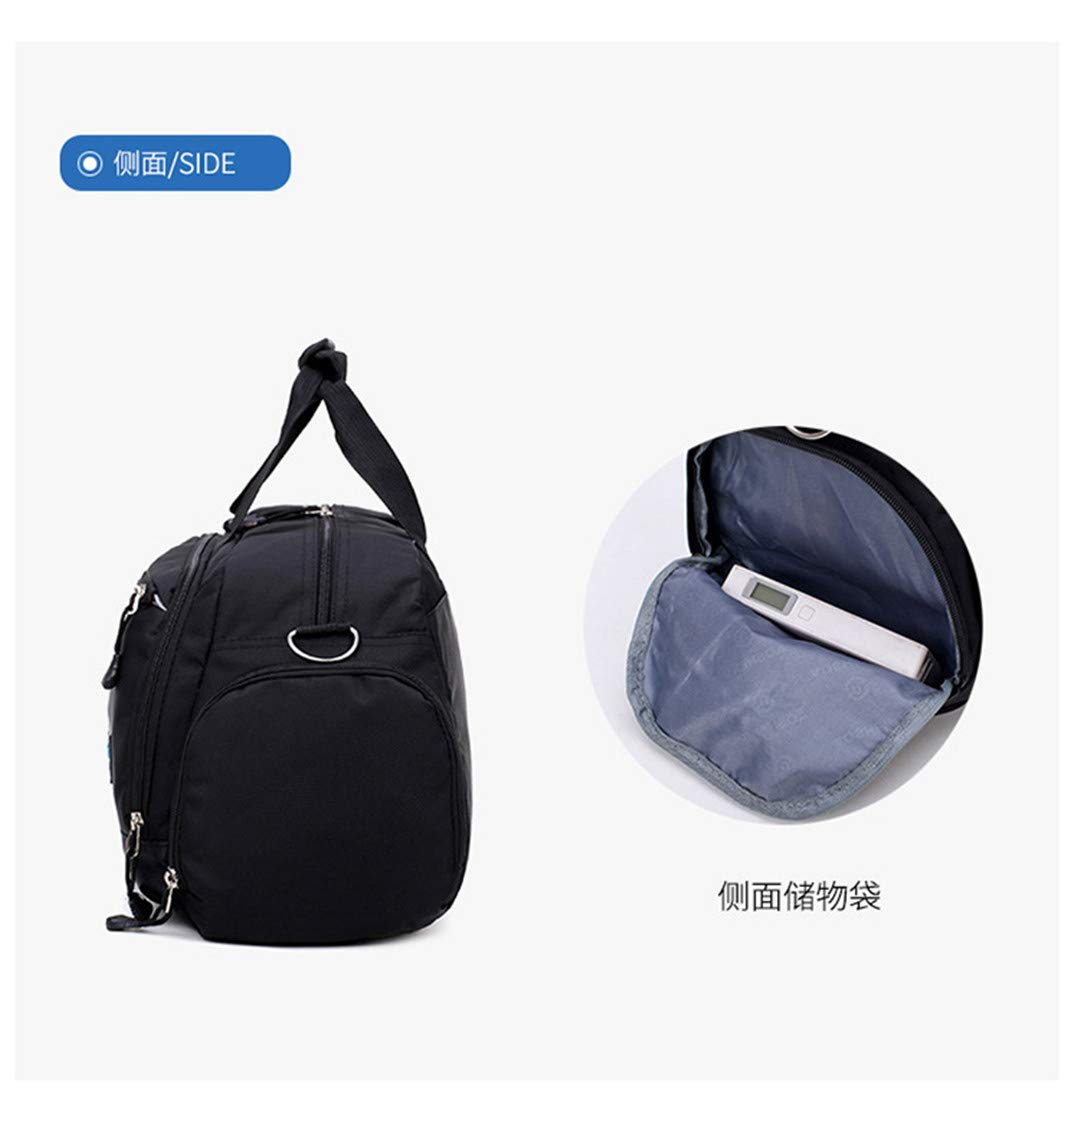 Oxford Mens Travel Bag Large Capacity Men H Luggage Bags Nylon Weekend Bags Women Travel Bags Multifunctional photo color4